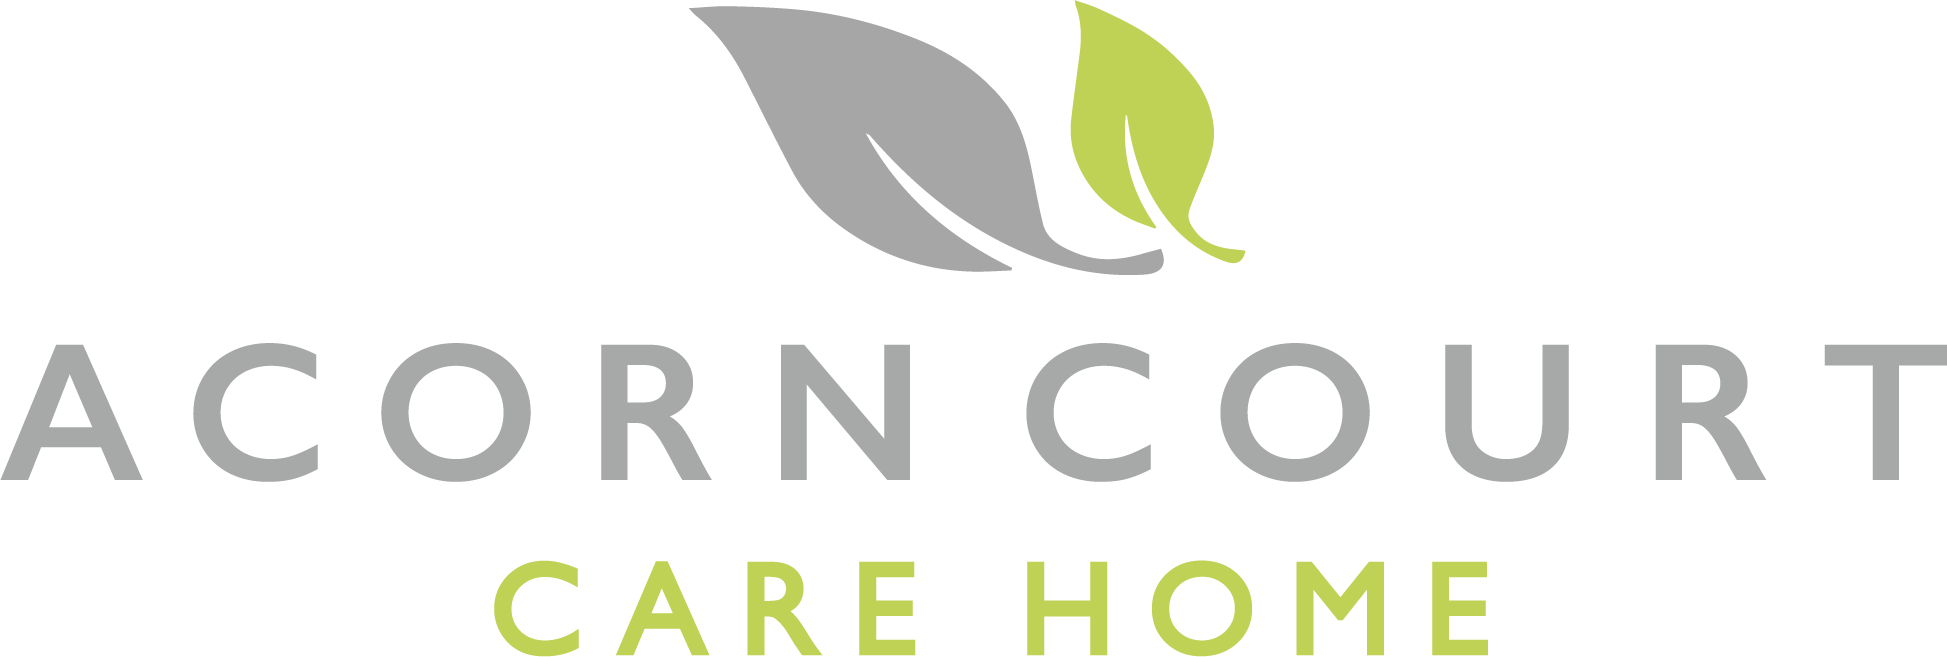 Acorn Court Care Home